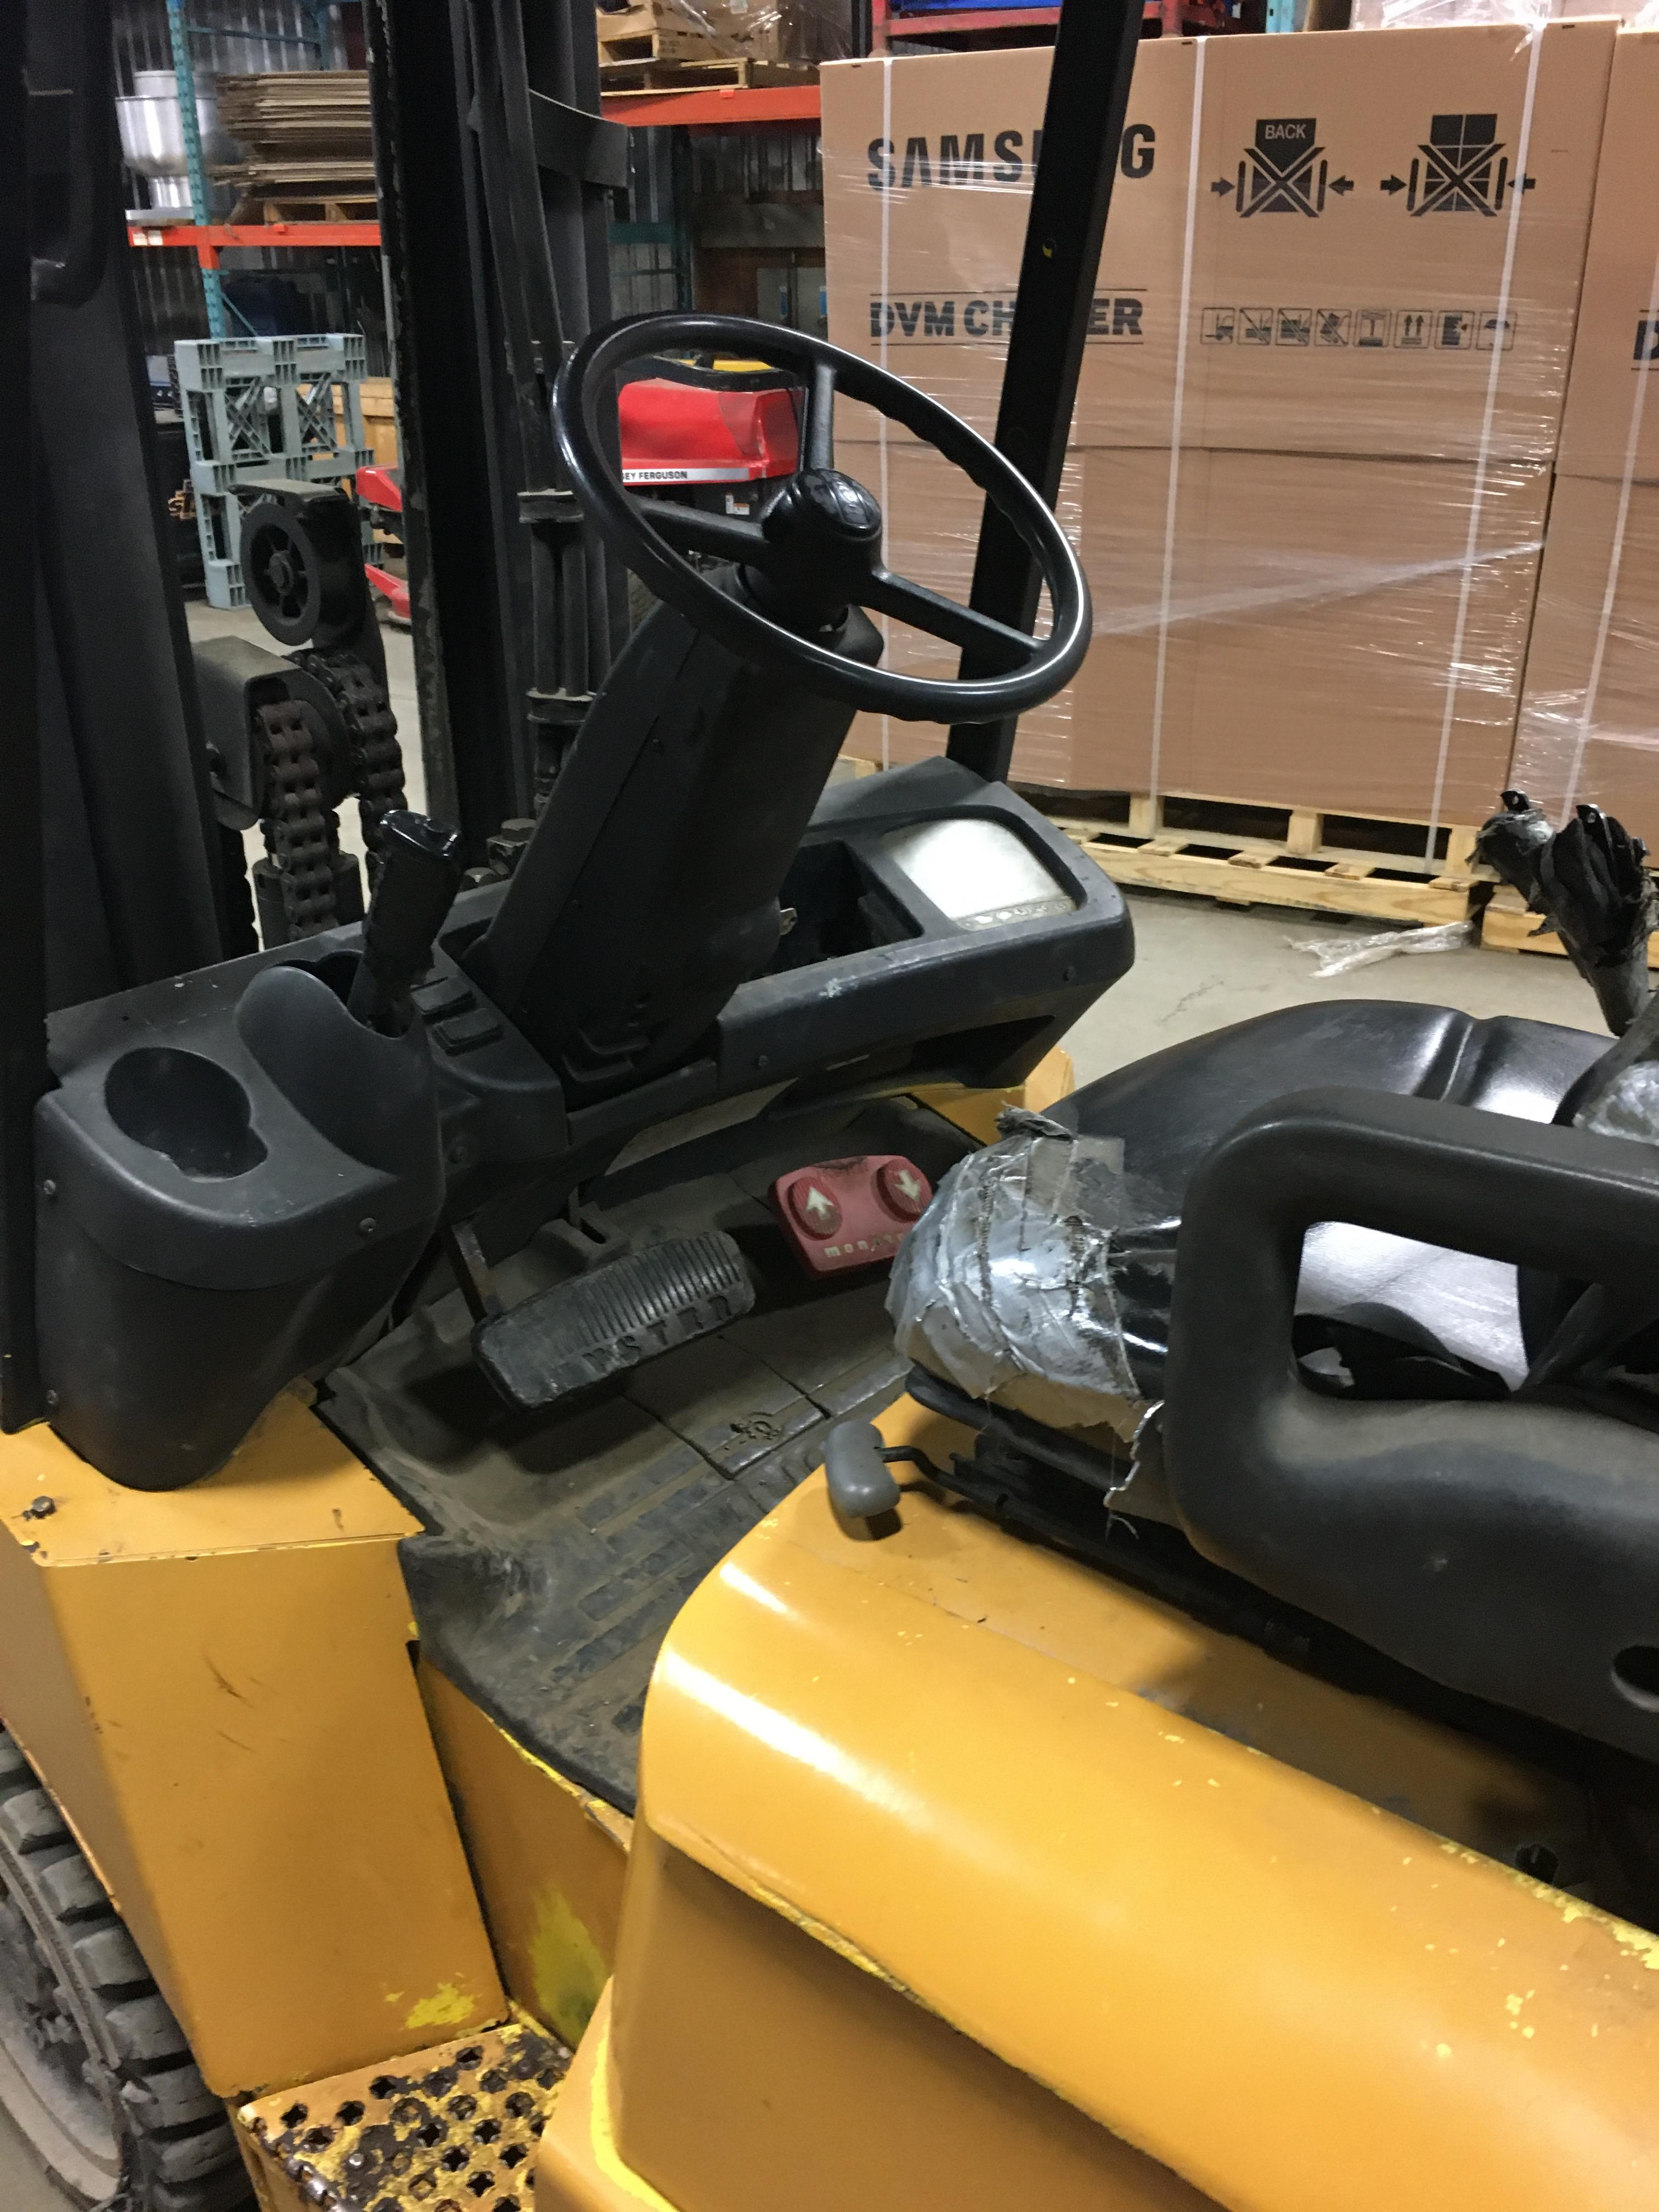 HYSTER PROPANE FORKLIFT, 8000 LBS CAP. (SIDESHIFT NOT FUNCTIONAL, NEEDS A REEL AND 2 HOSES) - Image 3 of 4